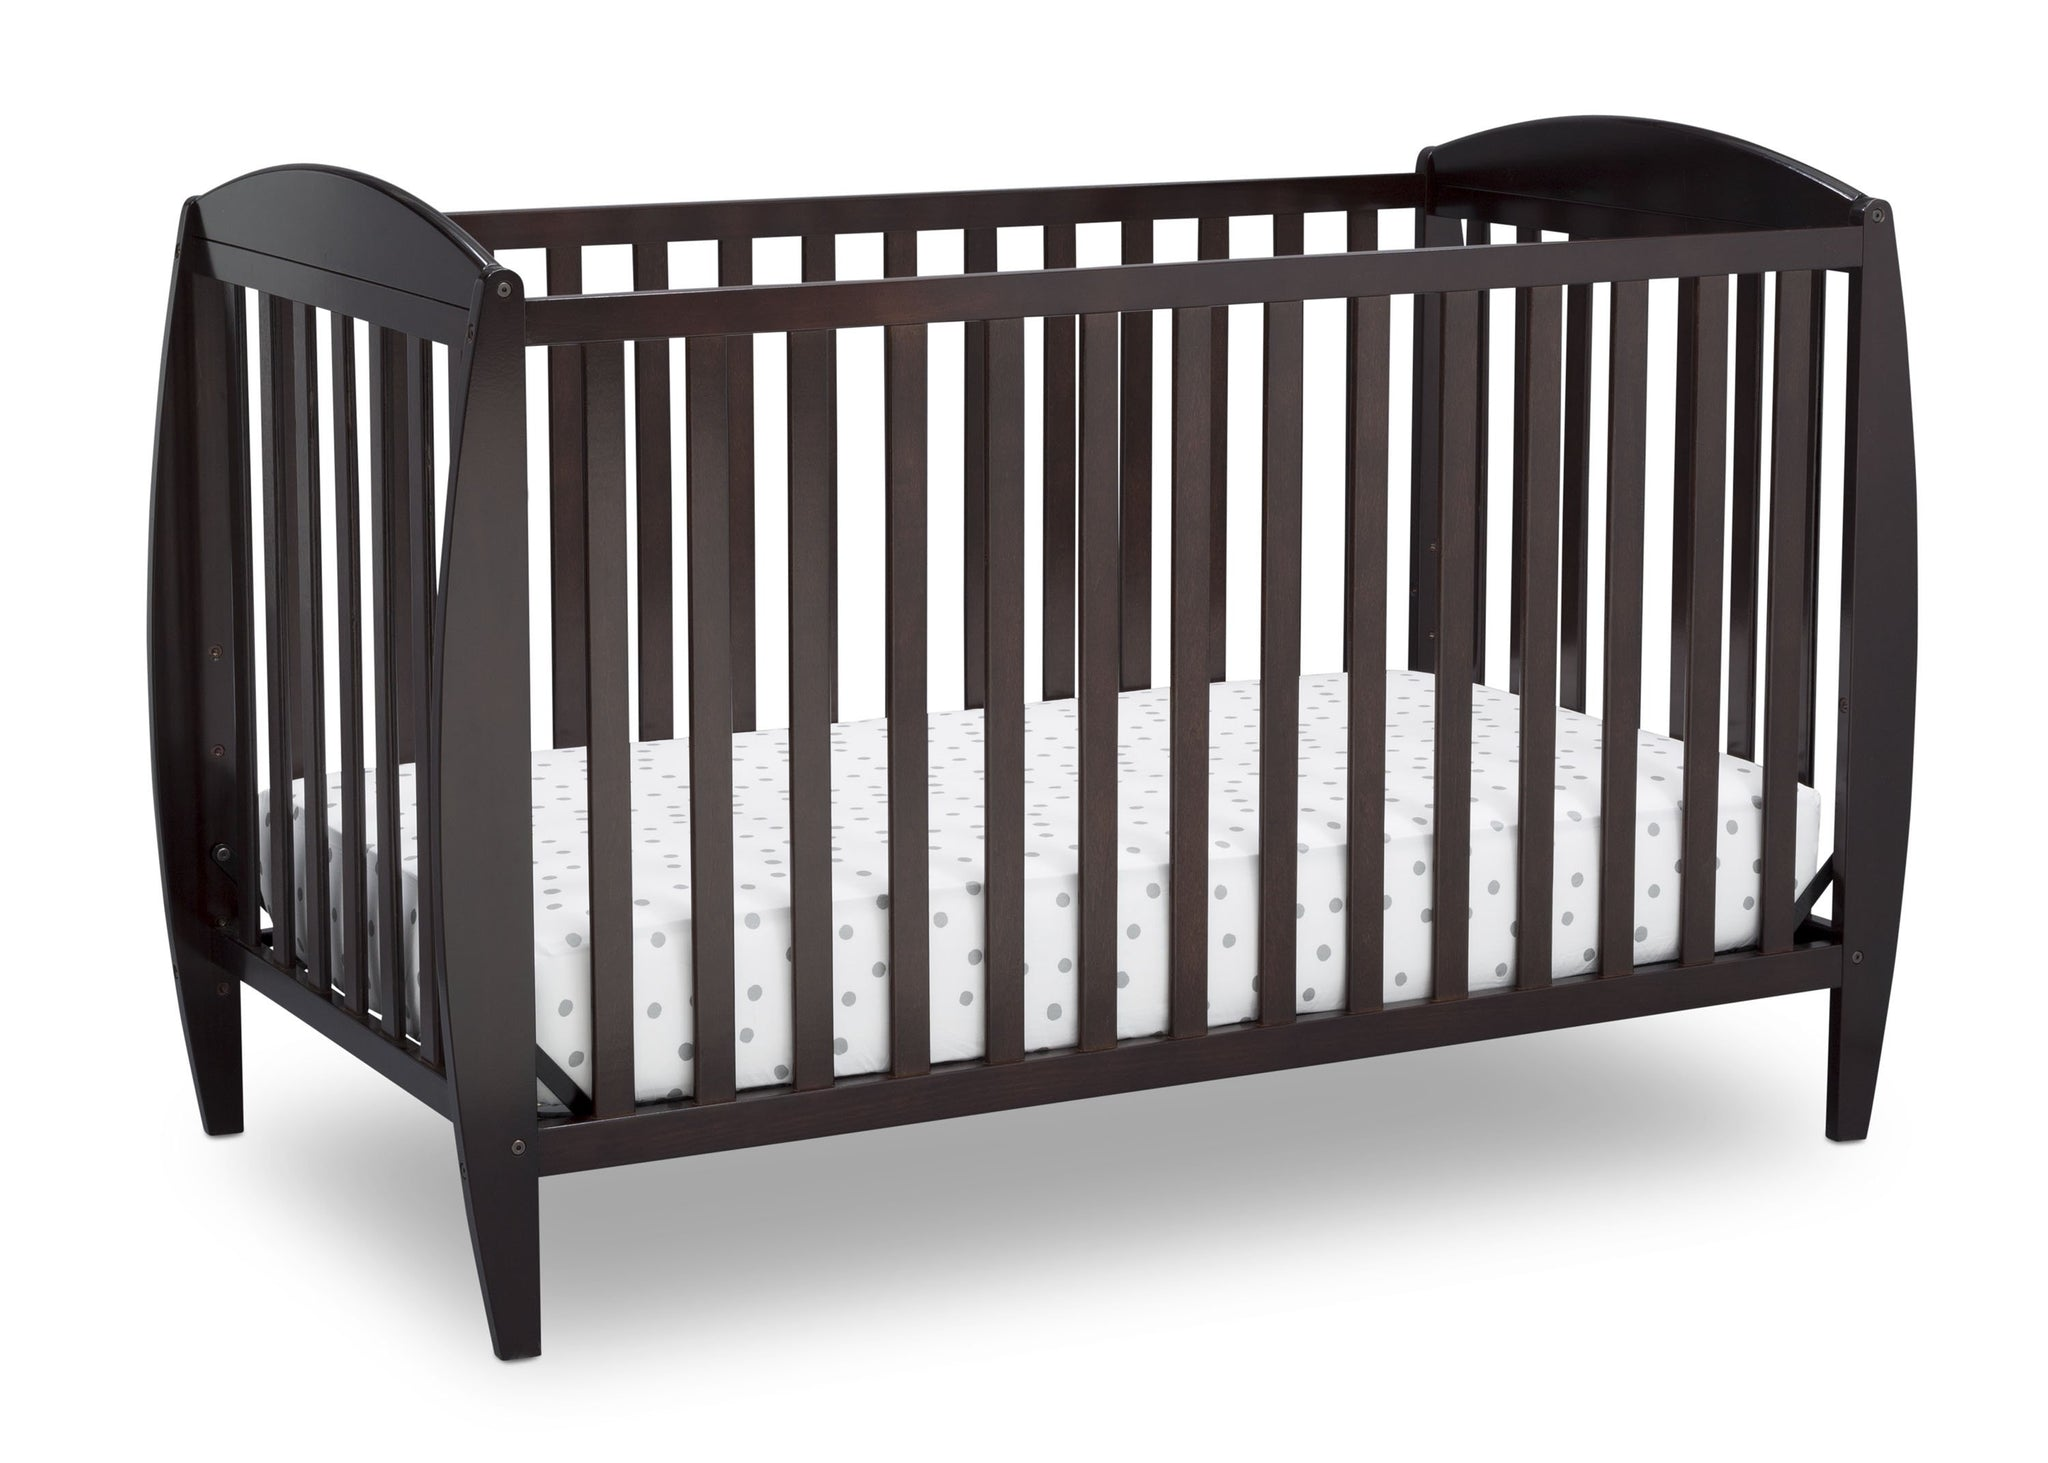 Delta Children Dark Chocolate (207) Taylor 4-in-1 Convertible Crib (W10040), Silo Crib, c2c